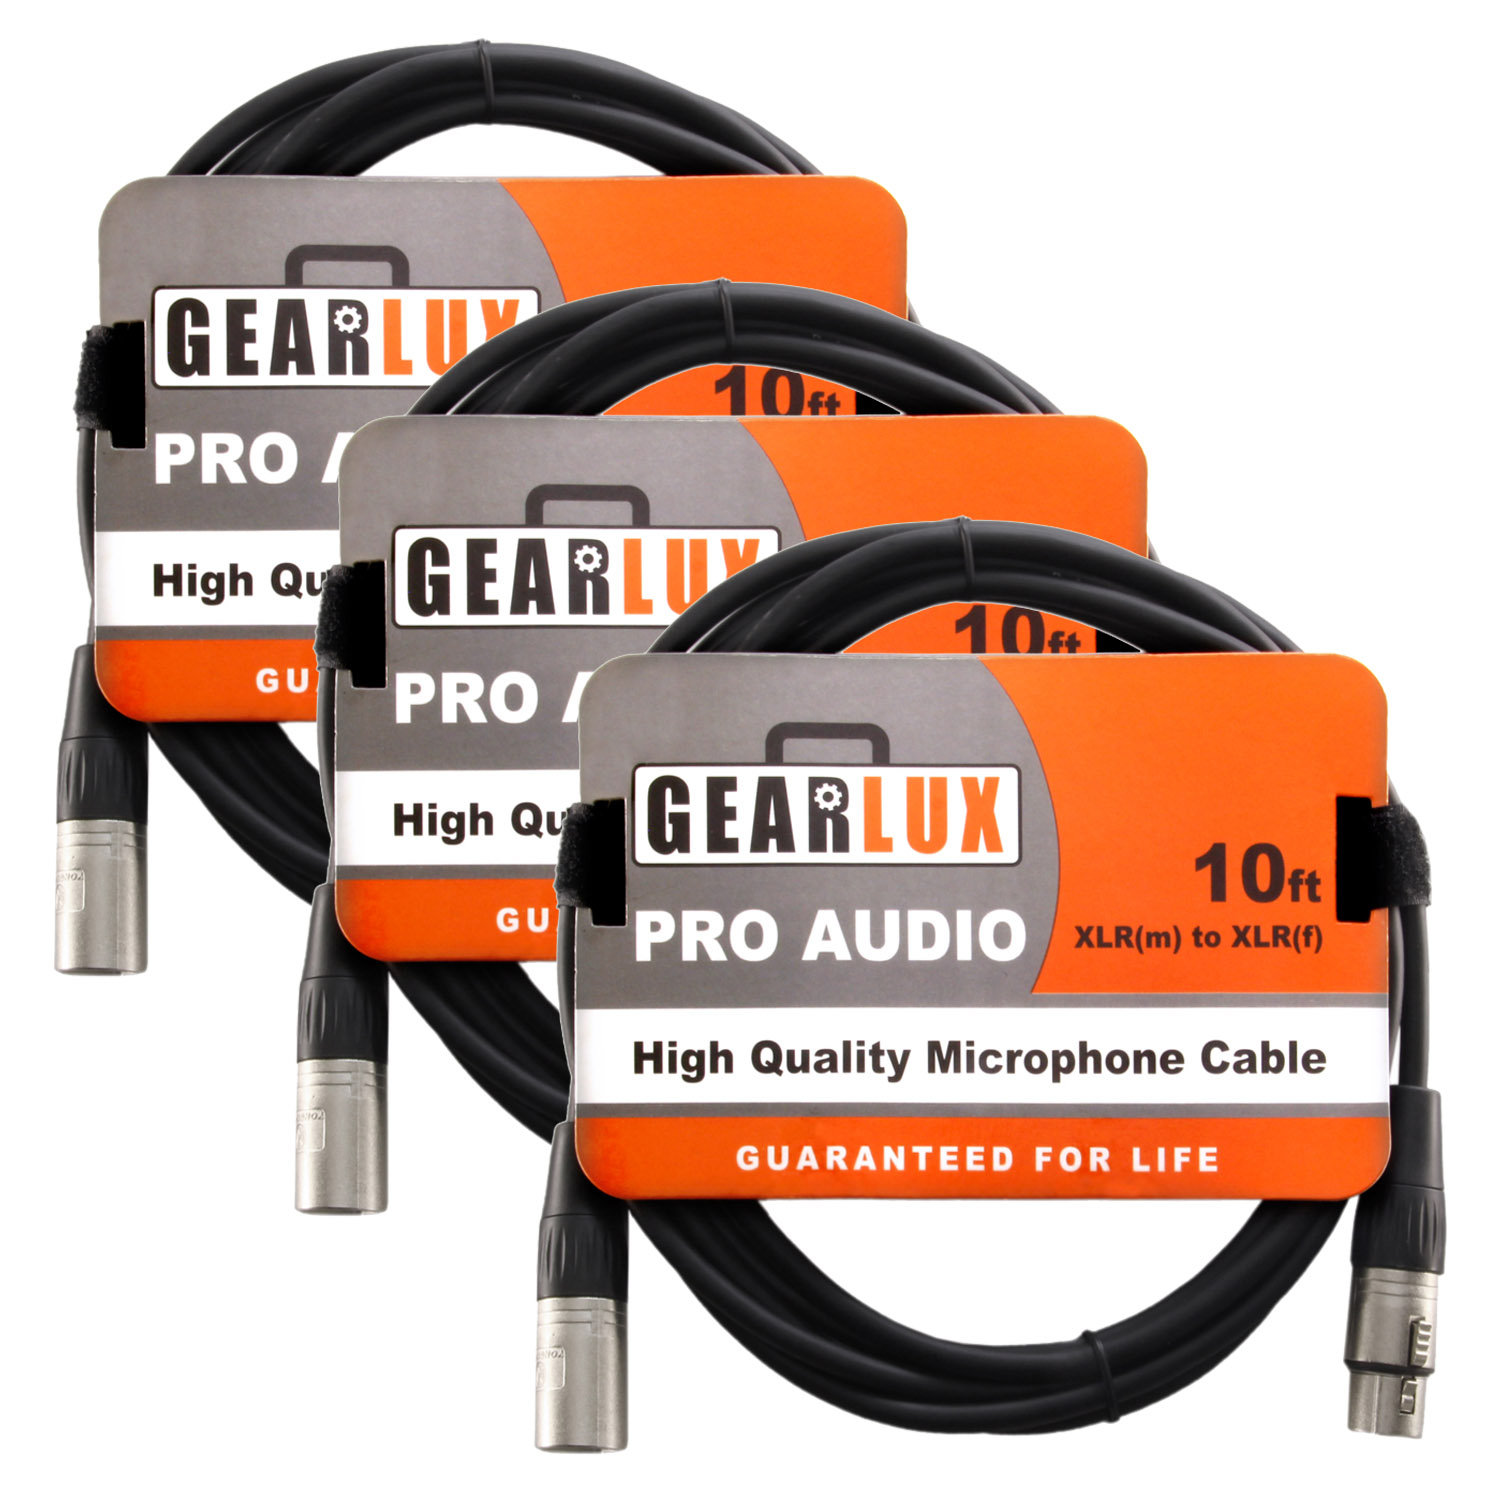 Gearlux XLR Microphone Cable 3 Pack 10 Foot